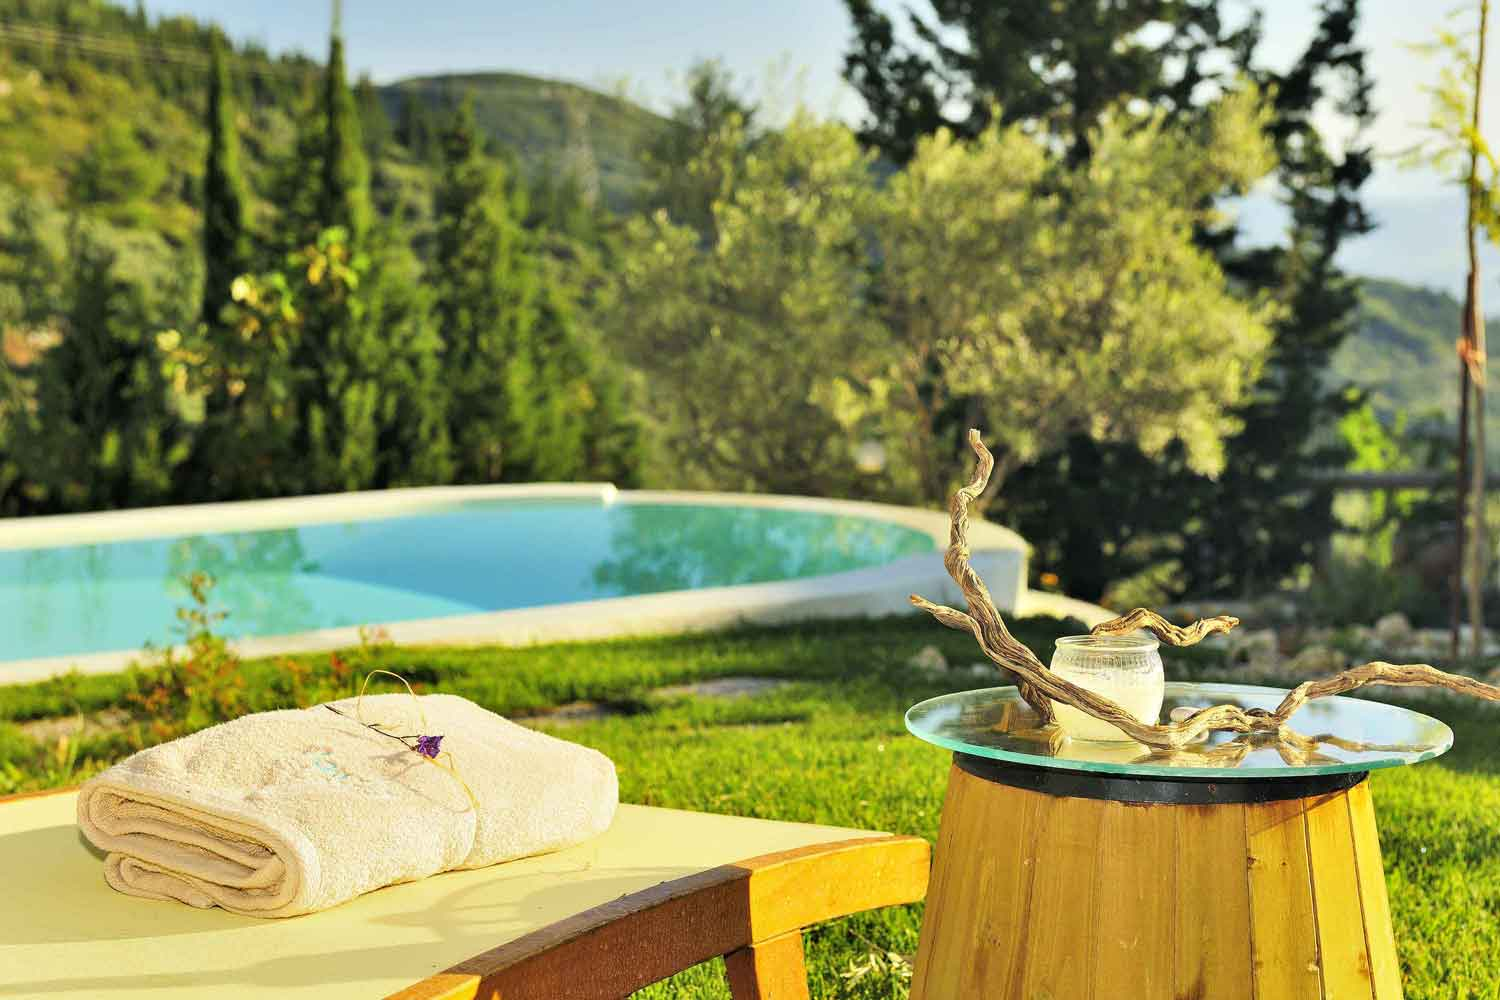 private pool villa - accommodation, perfect surrounding landscape